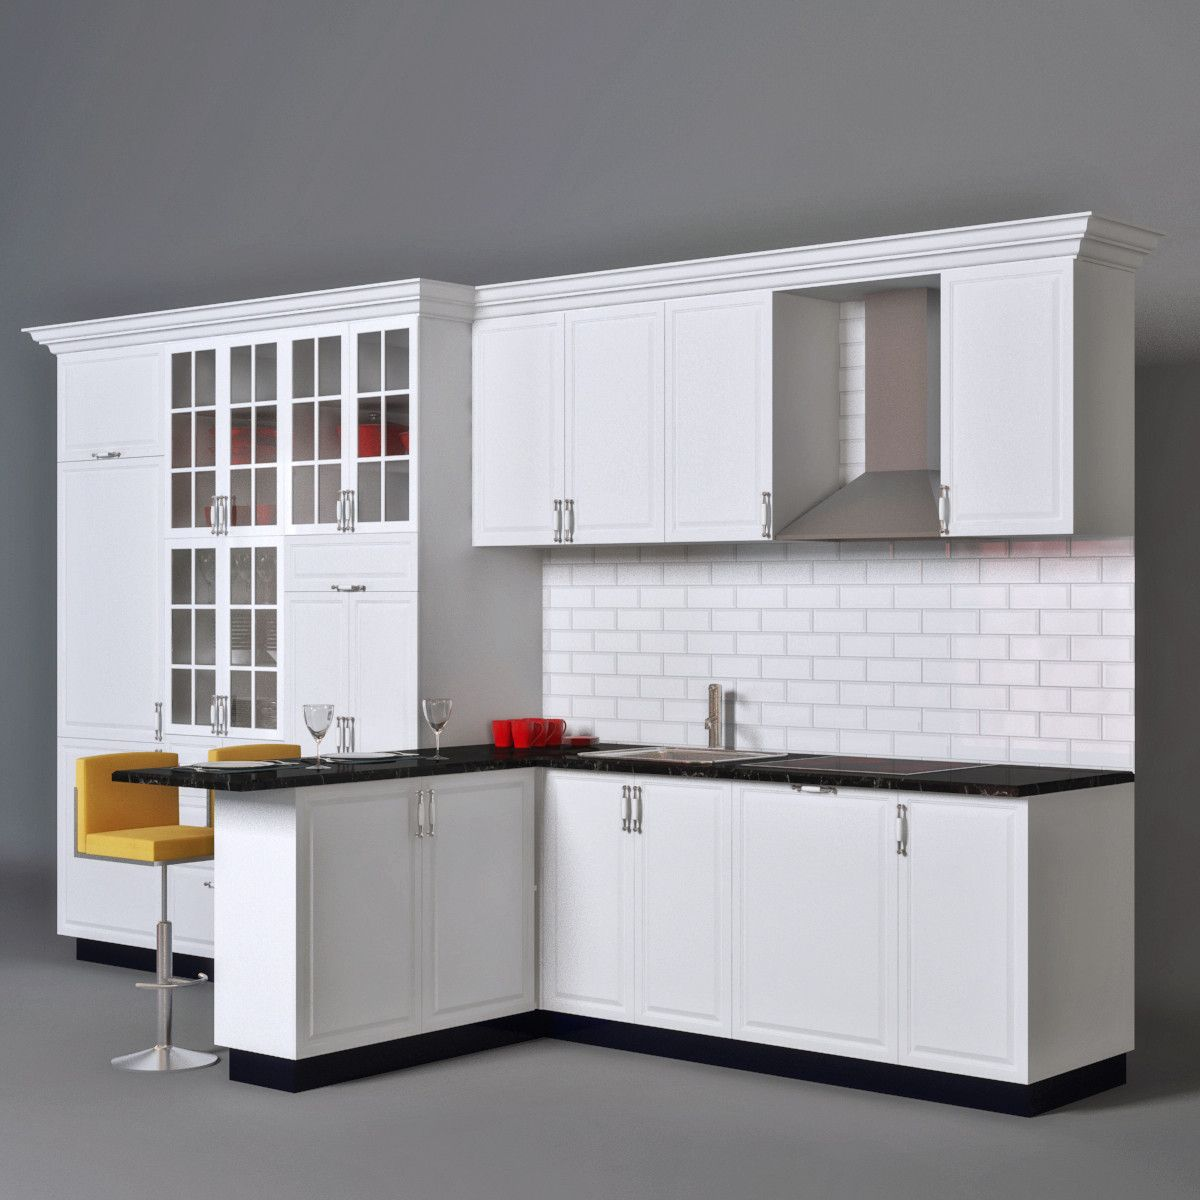 Ikea Kitchen 3d Model 3d Model Ikea Kitchen Classic Kitchens Kitchen 3d Model